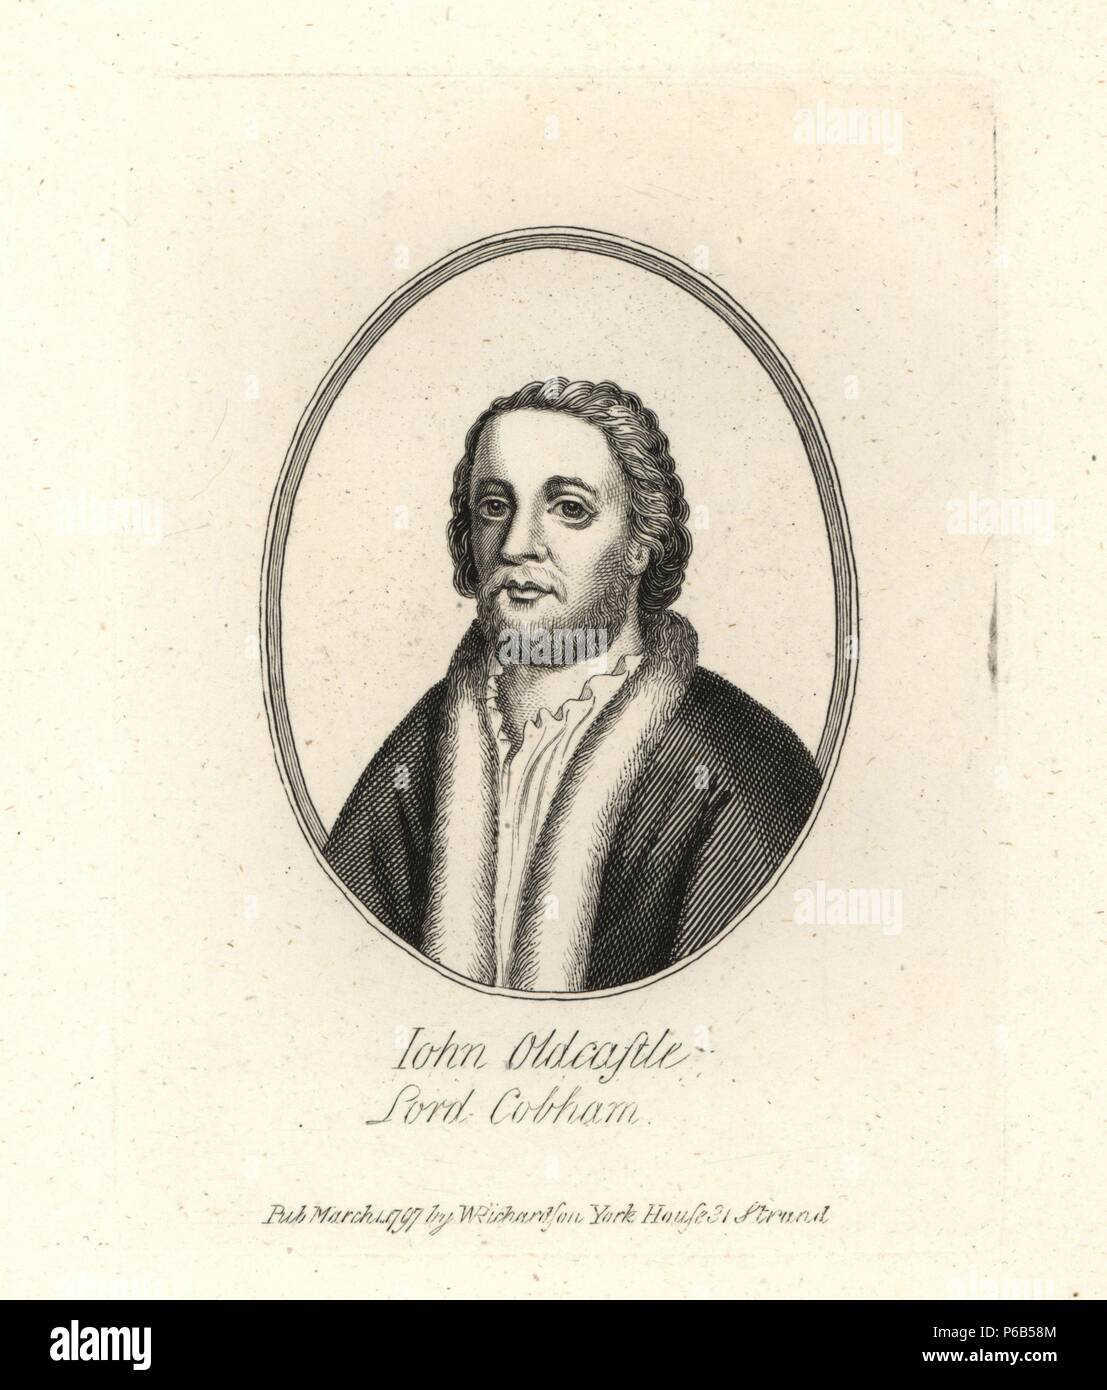 John Oldcastle, Lord Cobham, died 1418. Copperplate engraving from Richardson's 'Portraits illustrating Granger's Biographical History of England,' London, 1792–1812. Published by William Richardson, printseller, London. James Granger (1723–1776) was an English clergyman, biographer, and print collector. - Stock Image